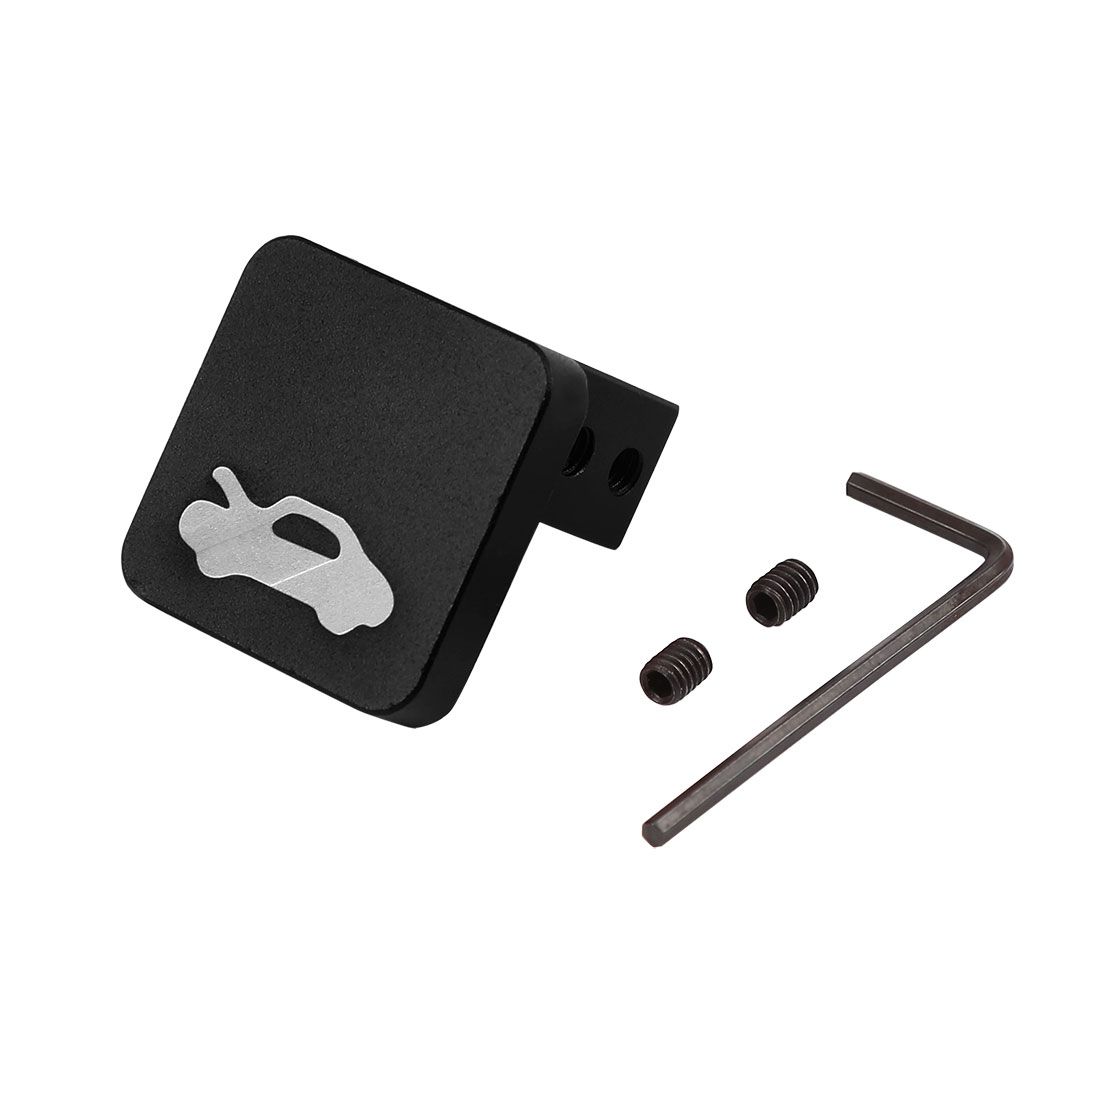 Hood Release Latch Handle Repair Kit Black for Honda Civic CR-V Ridgeline